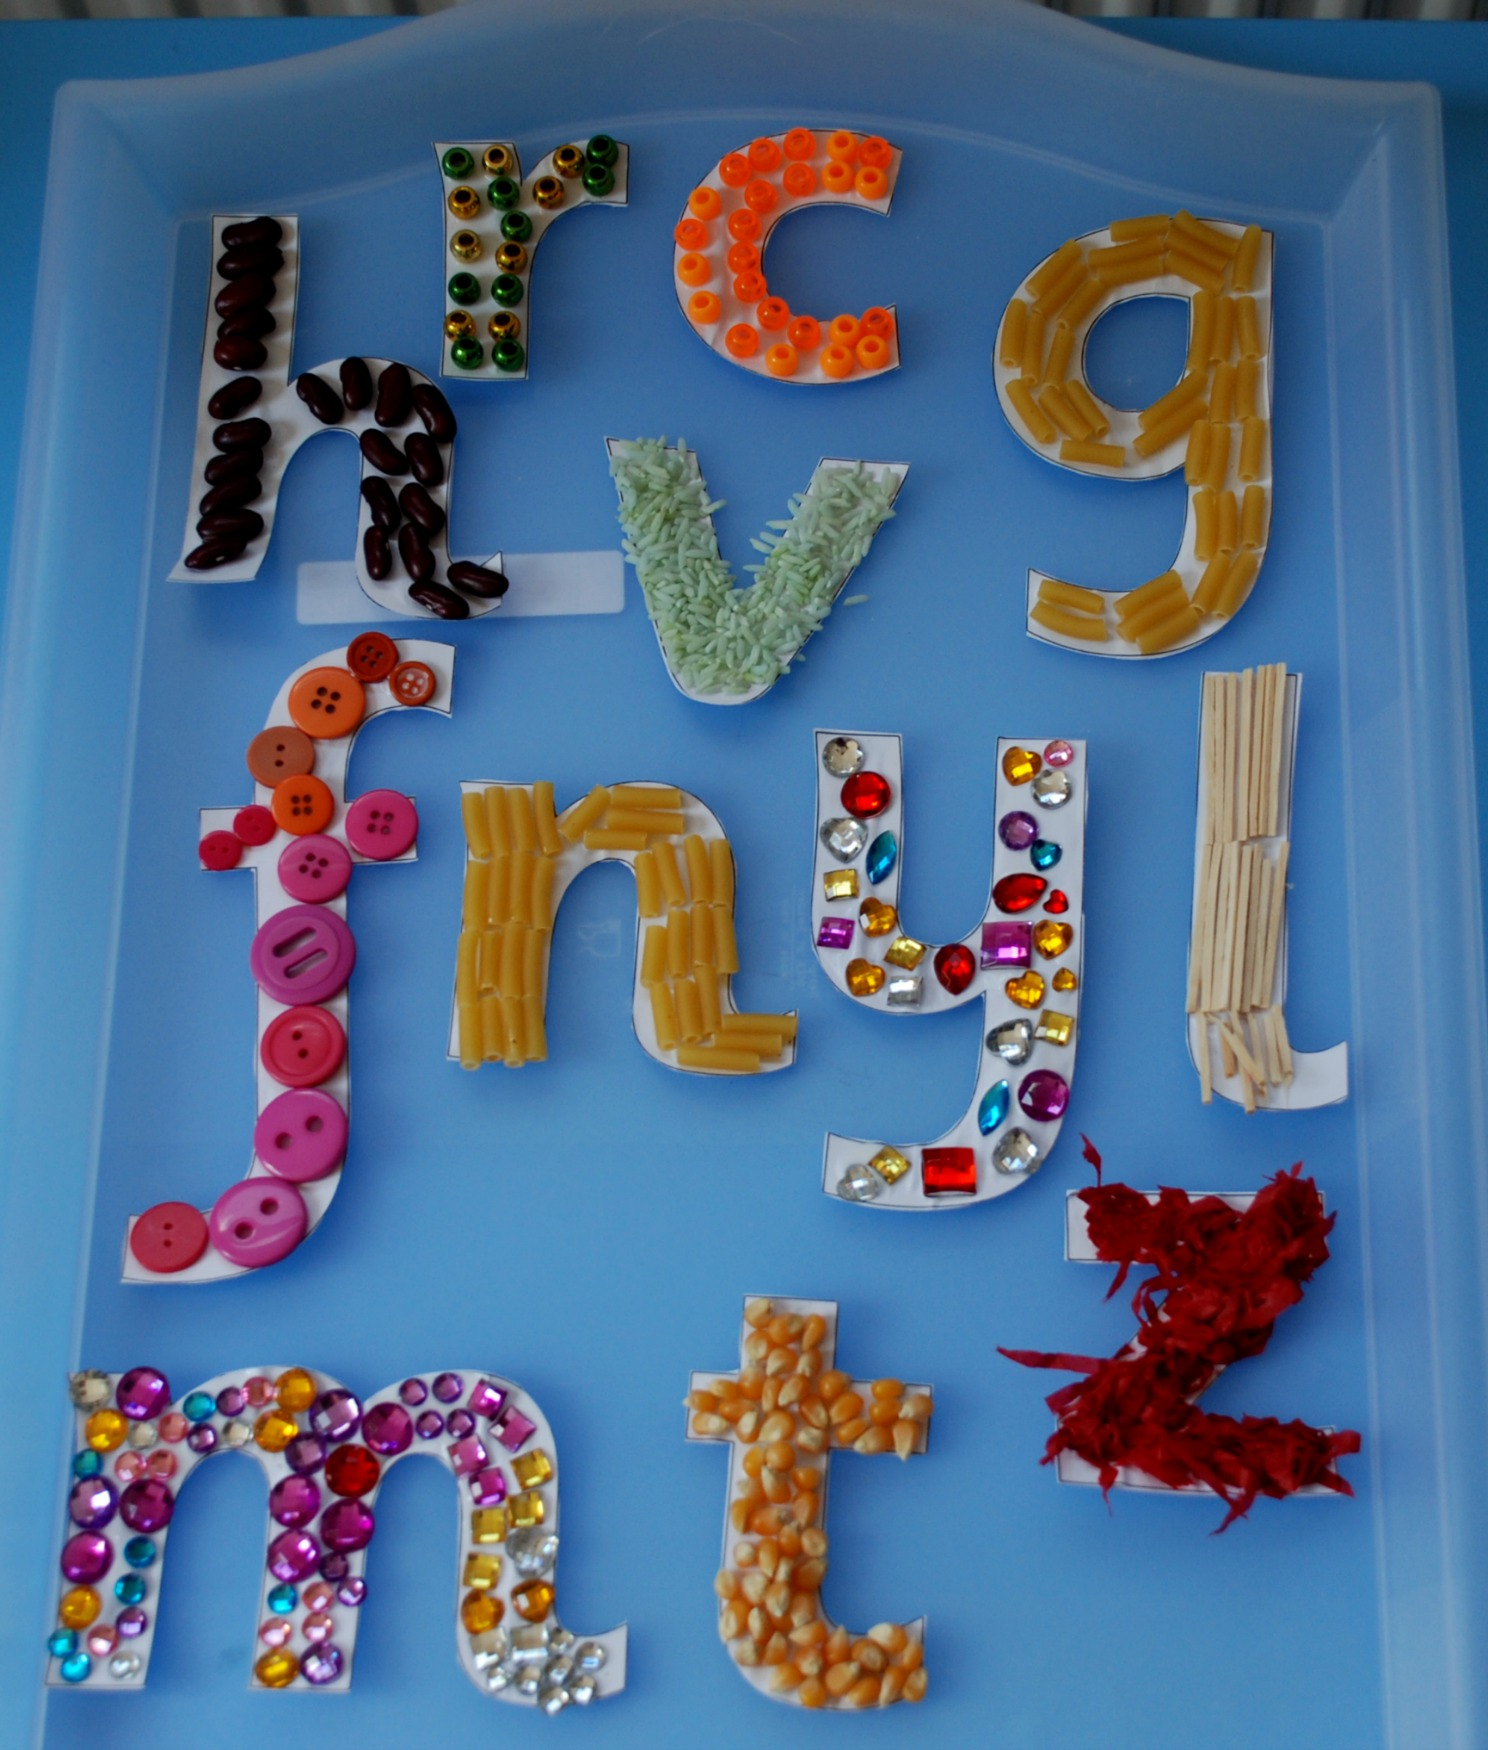 Making our own mosaic letters | ofamily learning together